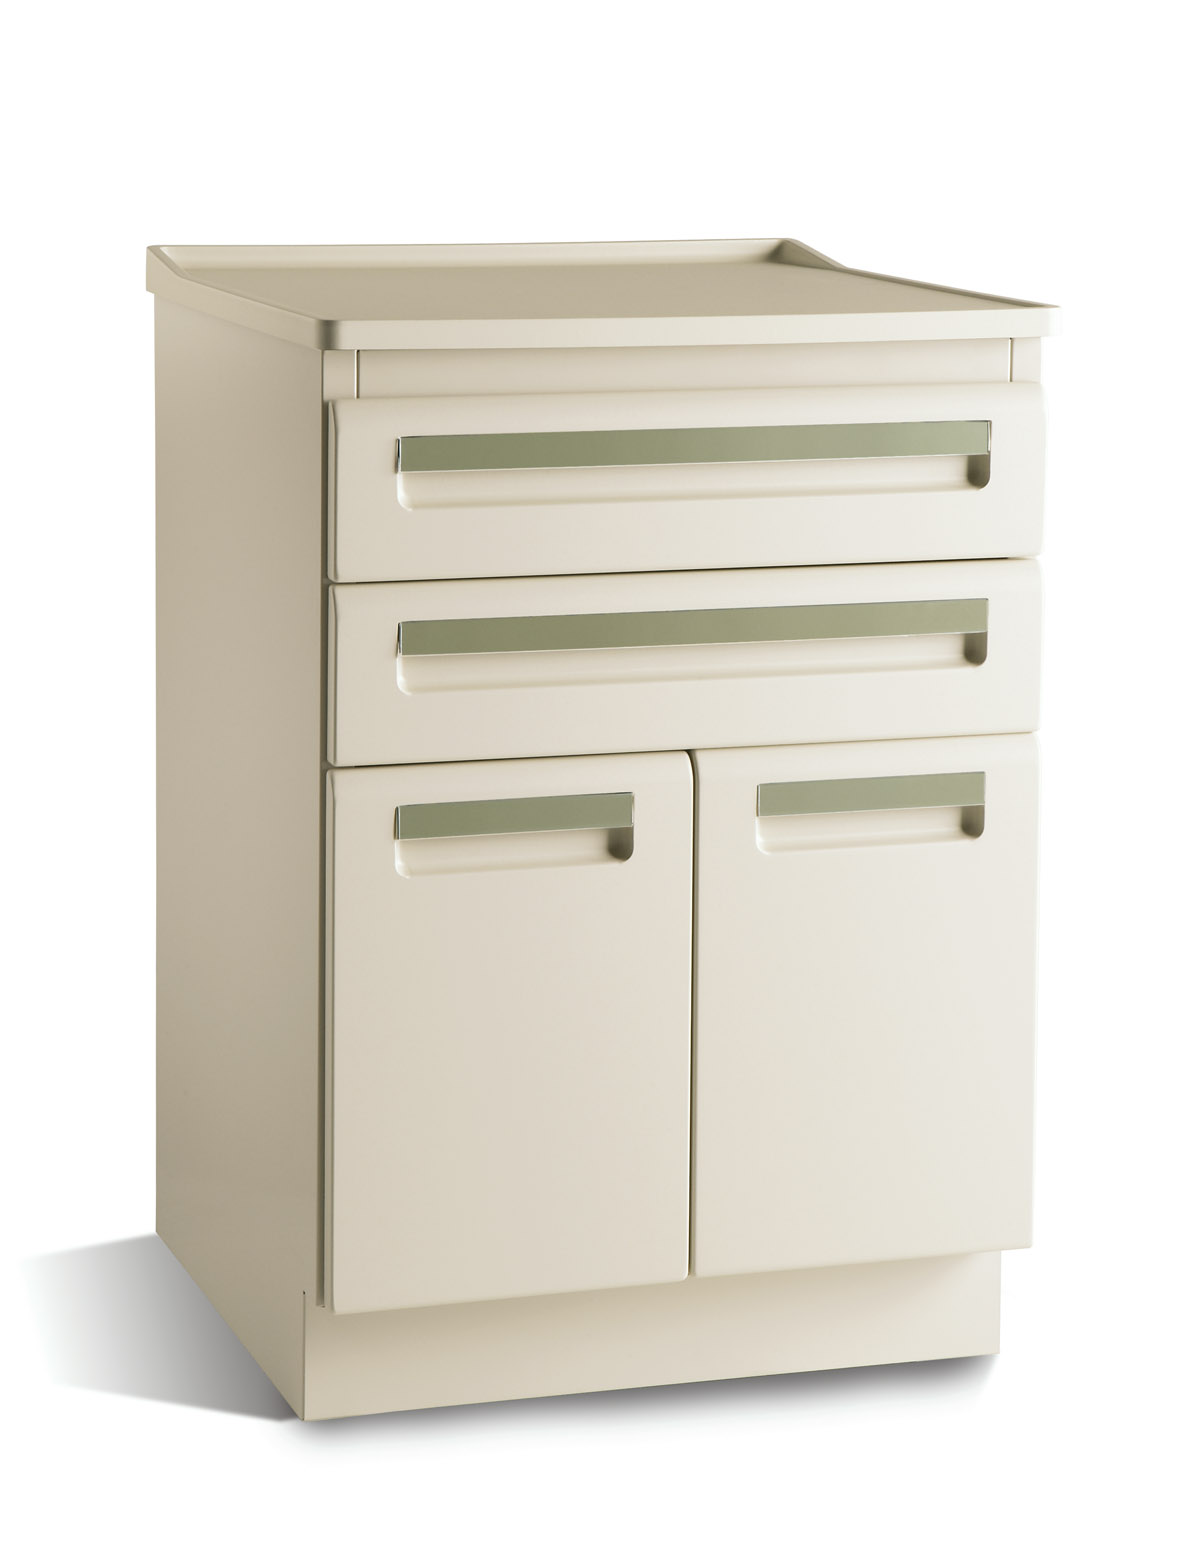 CABINET, TREATMENT, 24x18, 2 DR/2 DRW, T.COTTA/CANYON